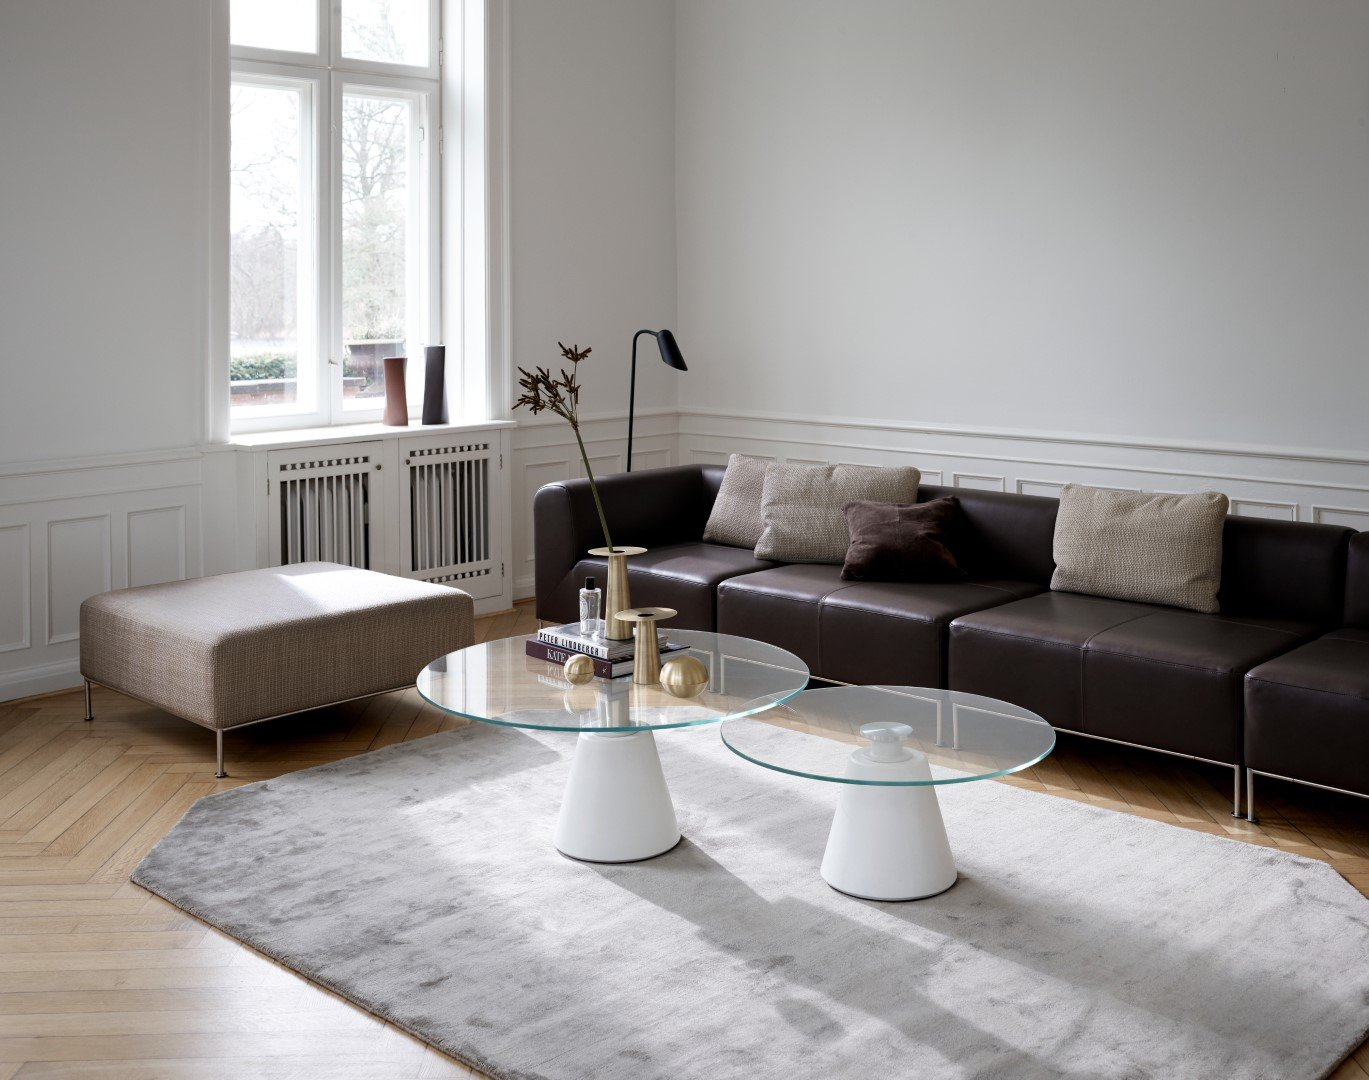 The Miami modular sofa and Madrid tables